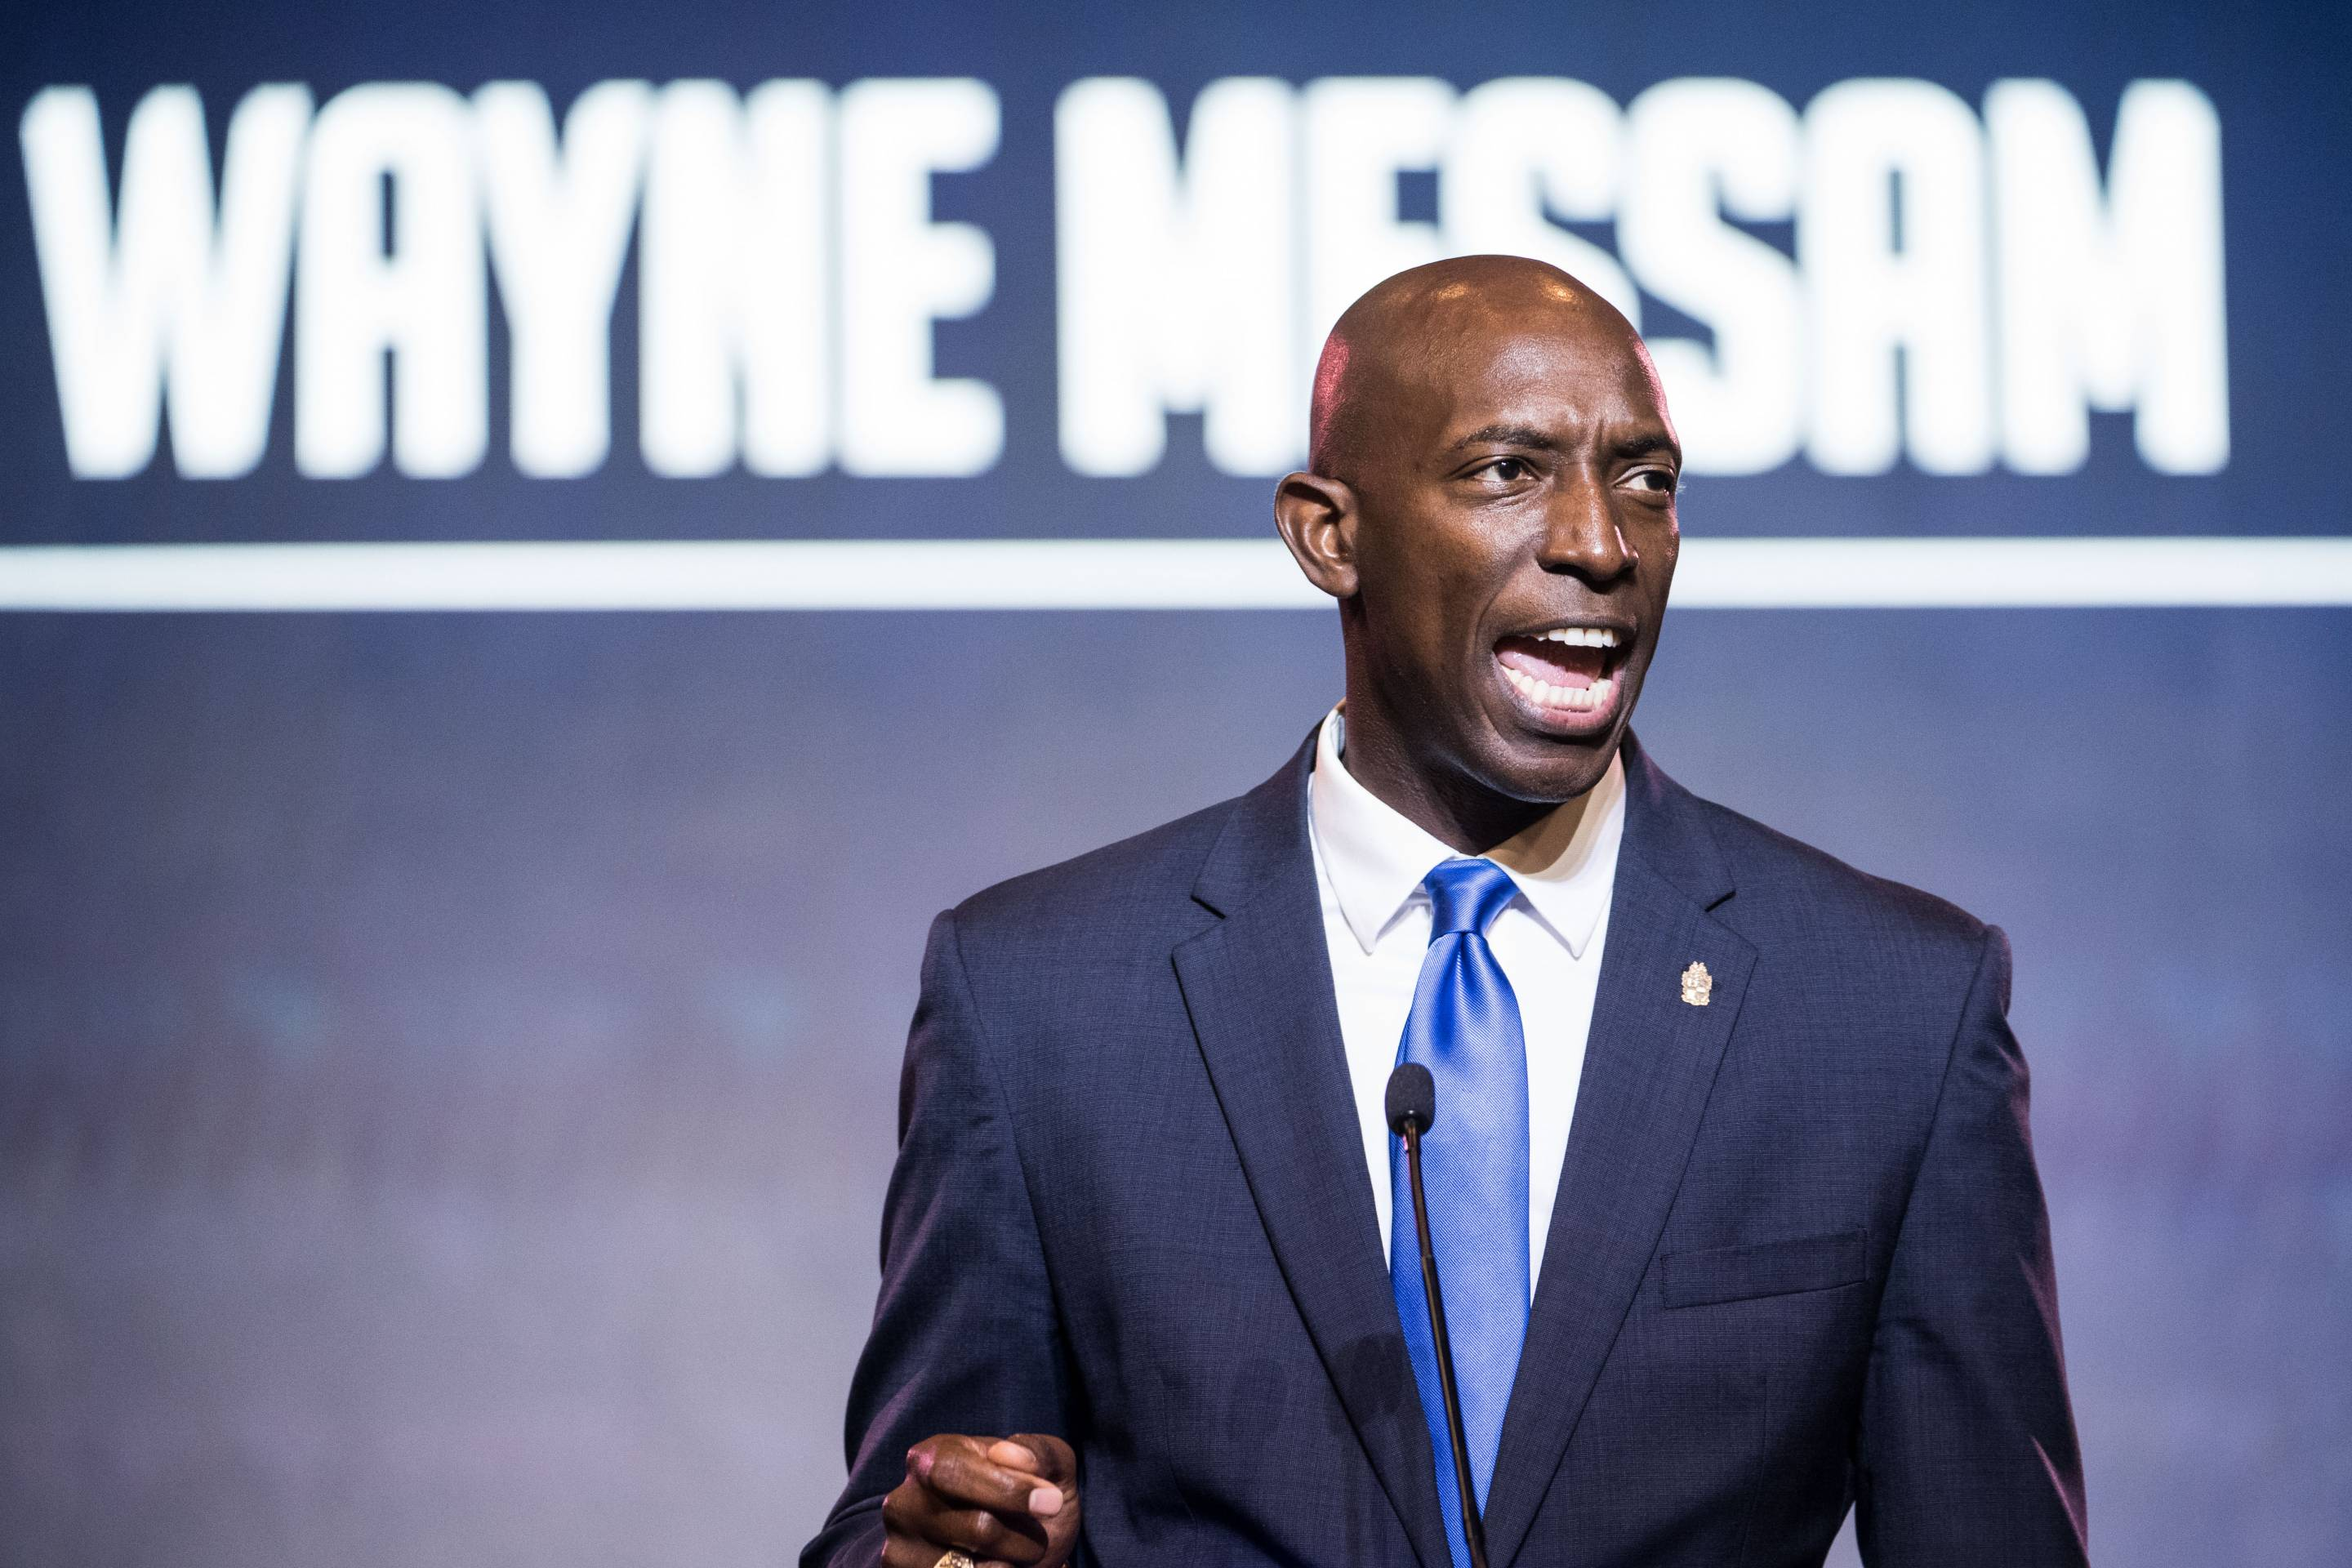 Democratic presidential candidate and Miramar Mayor Wayne Messam speaks to the crowd during the 2019 South Carolina Democratic Party State Convention on June 22, 2019 in Columbia, S.C.